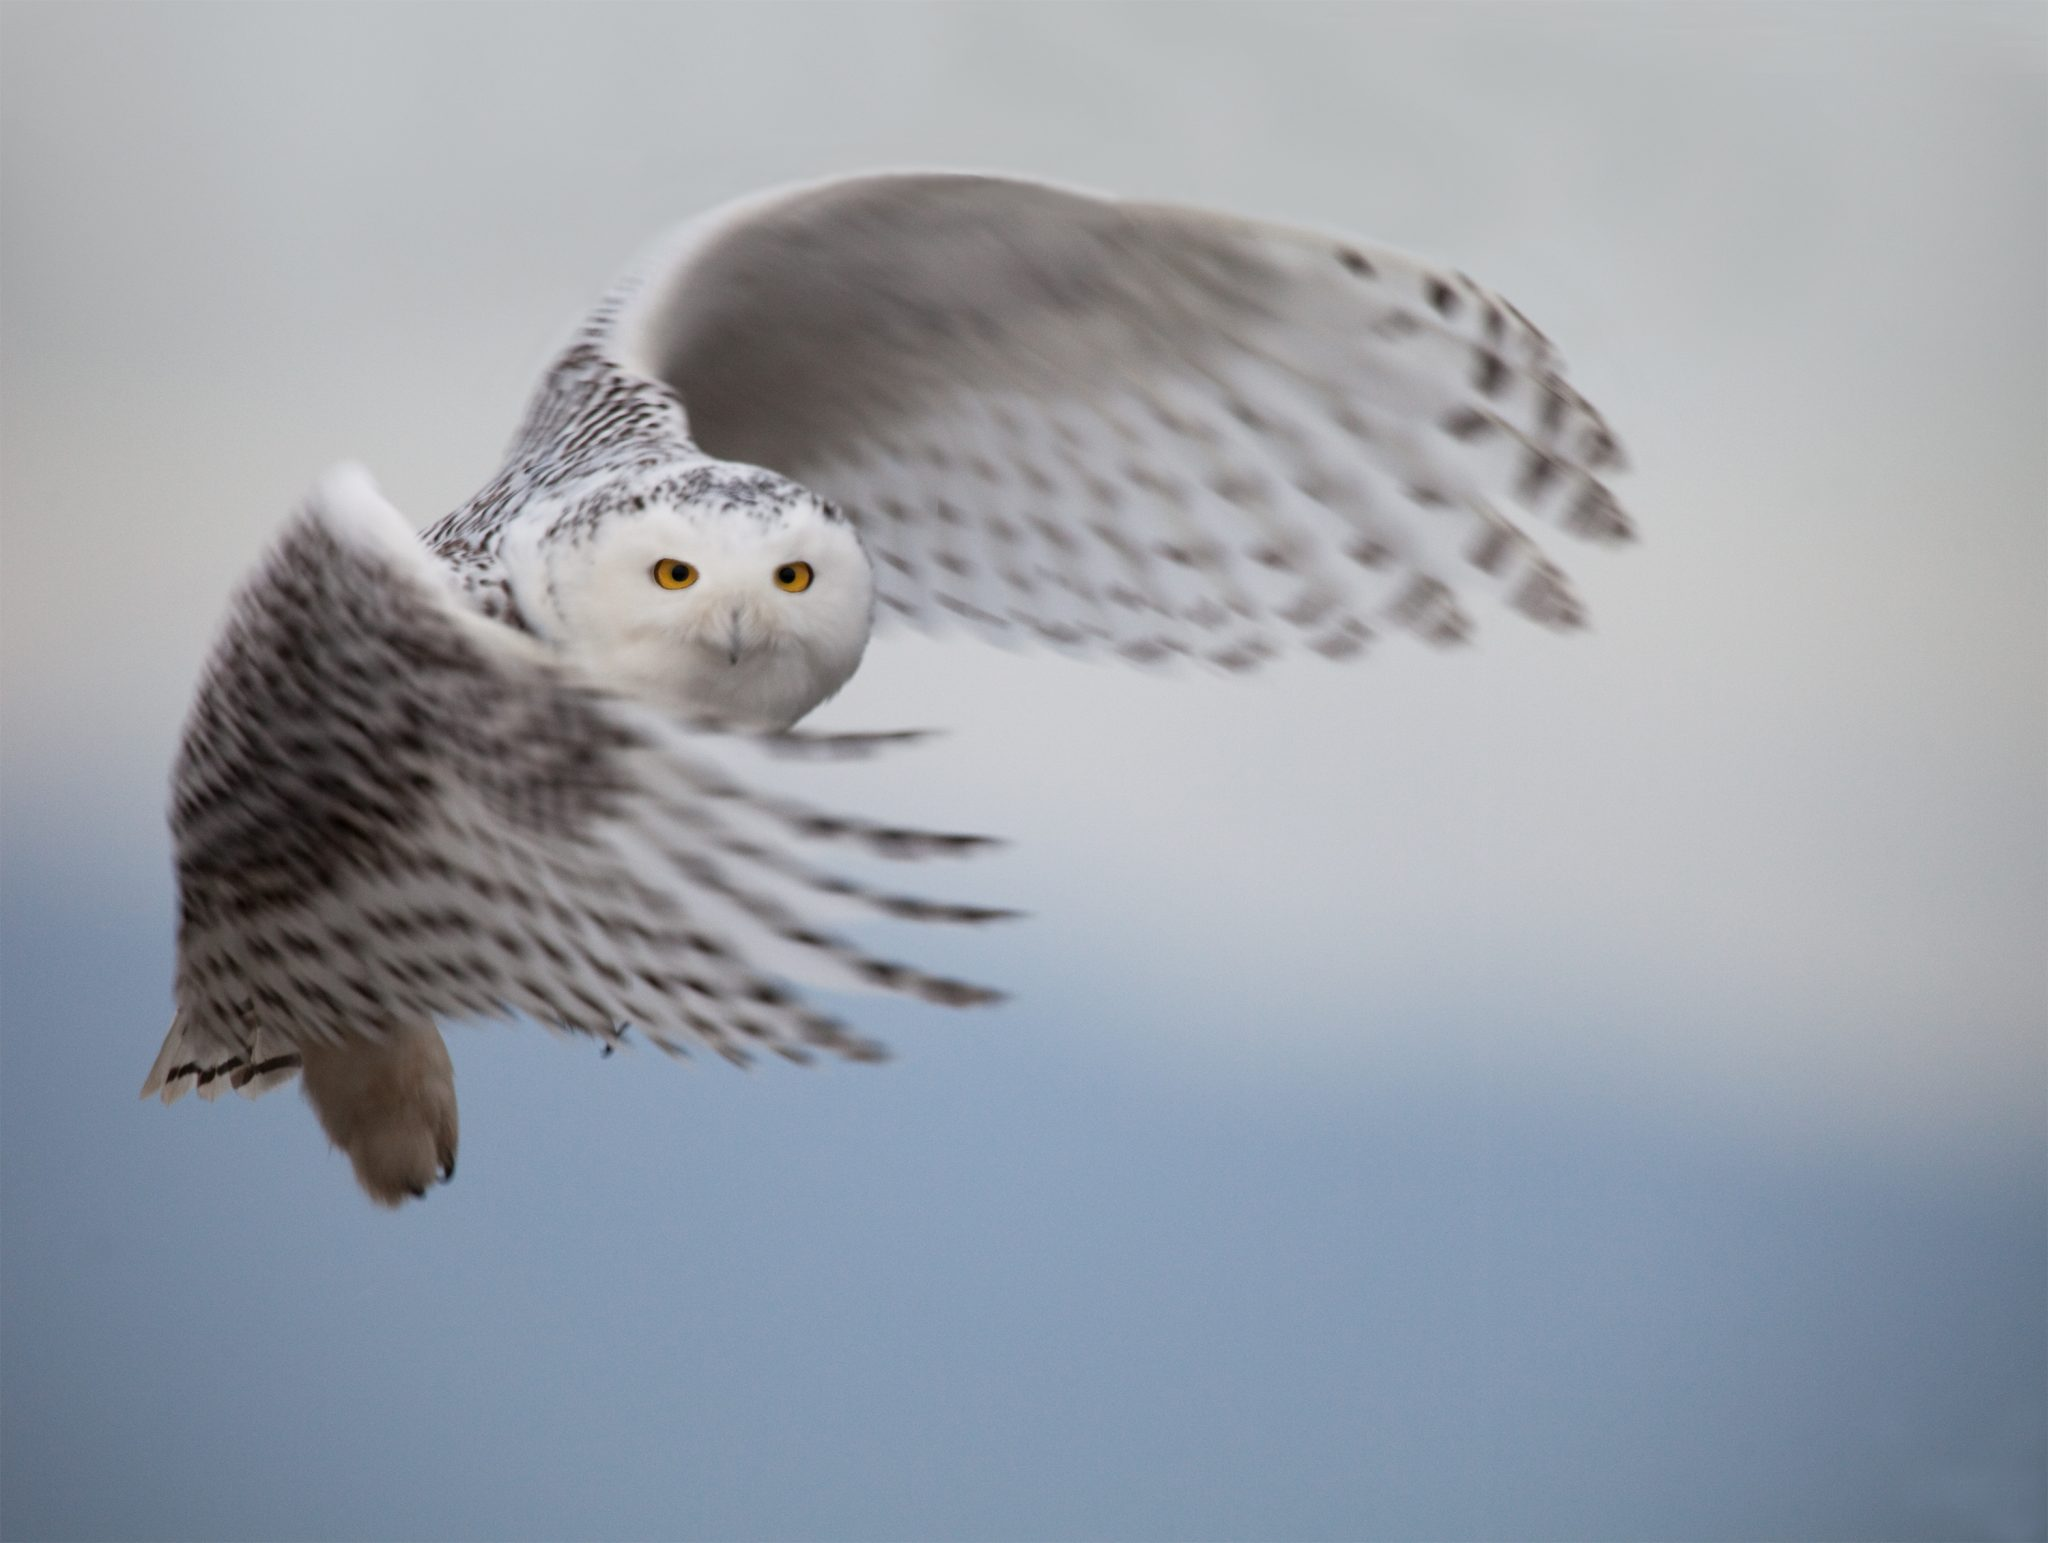 White Snowy Owl Spotted in Rare Sighting in Central Park!